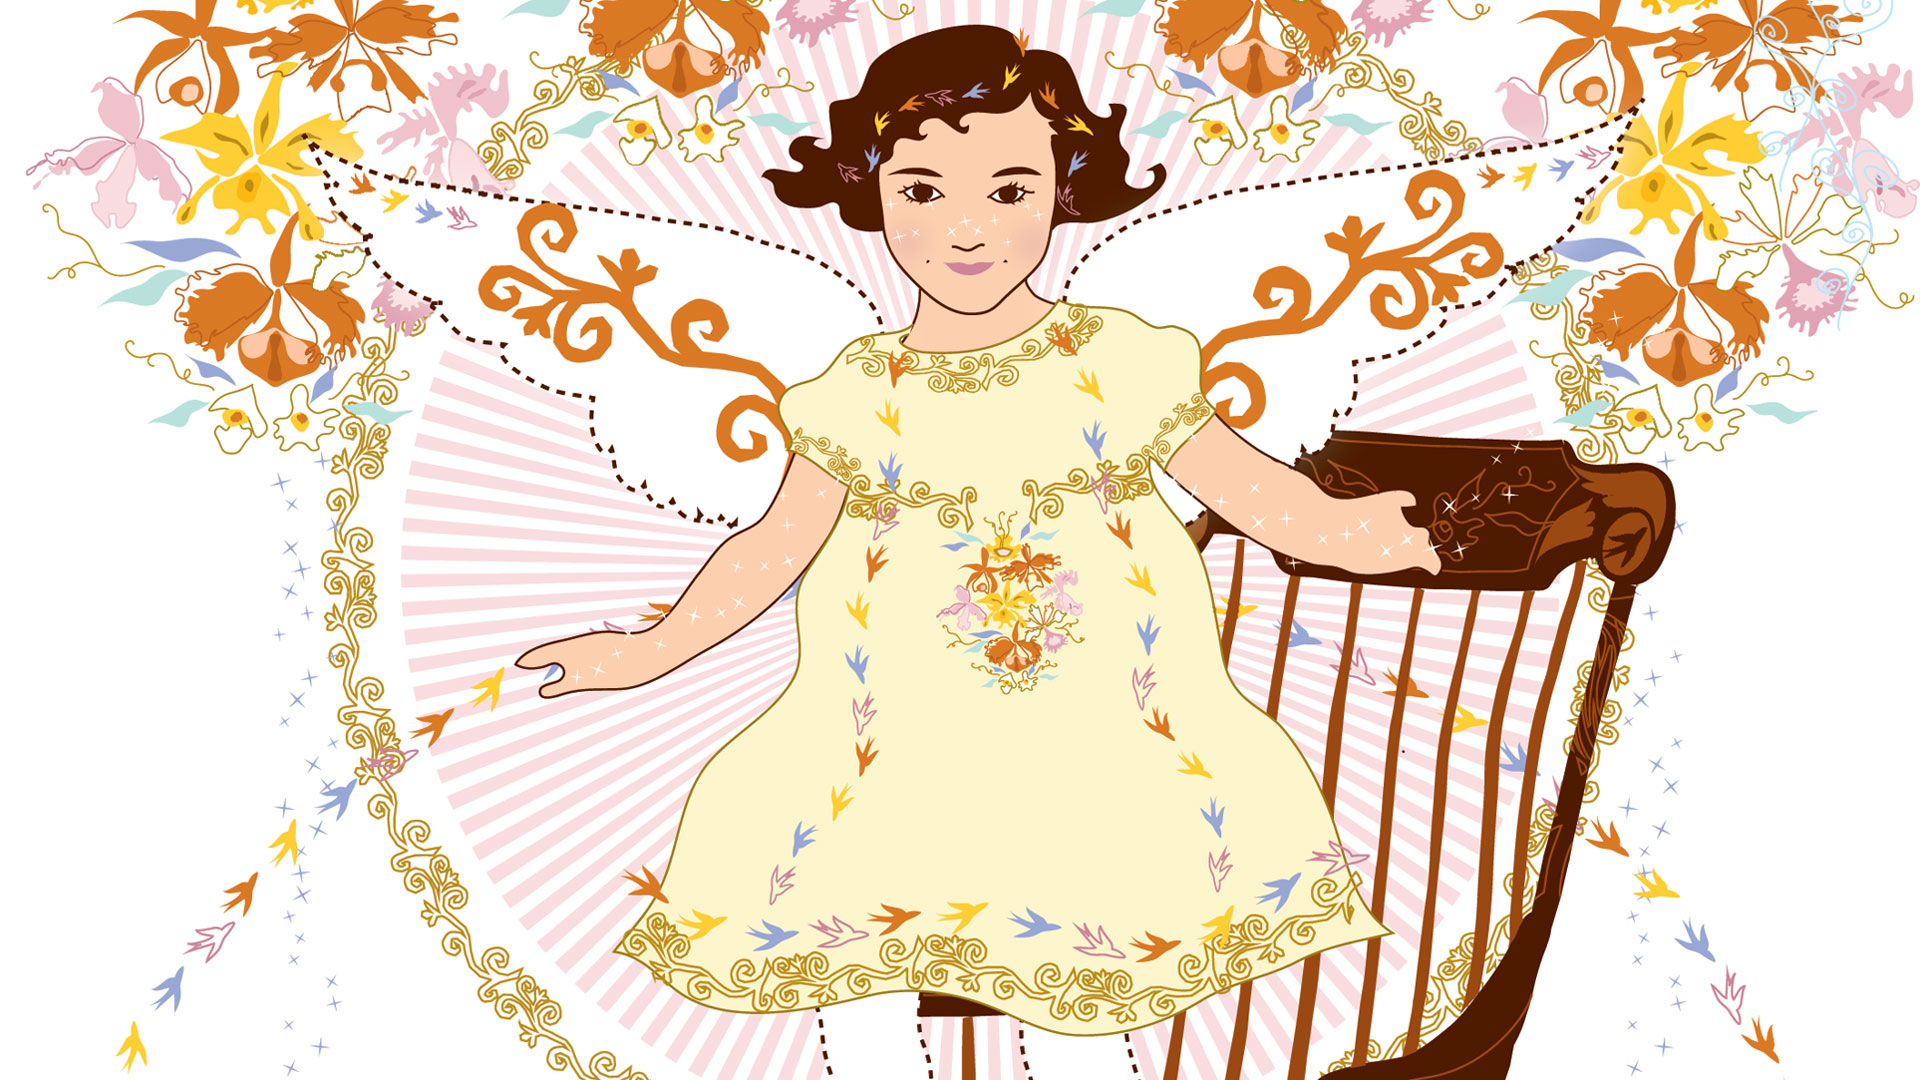 An artist's rendering of an angel on a rocking chair